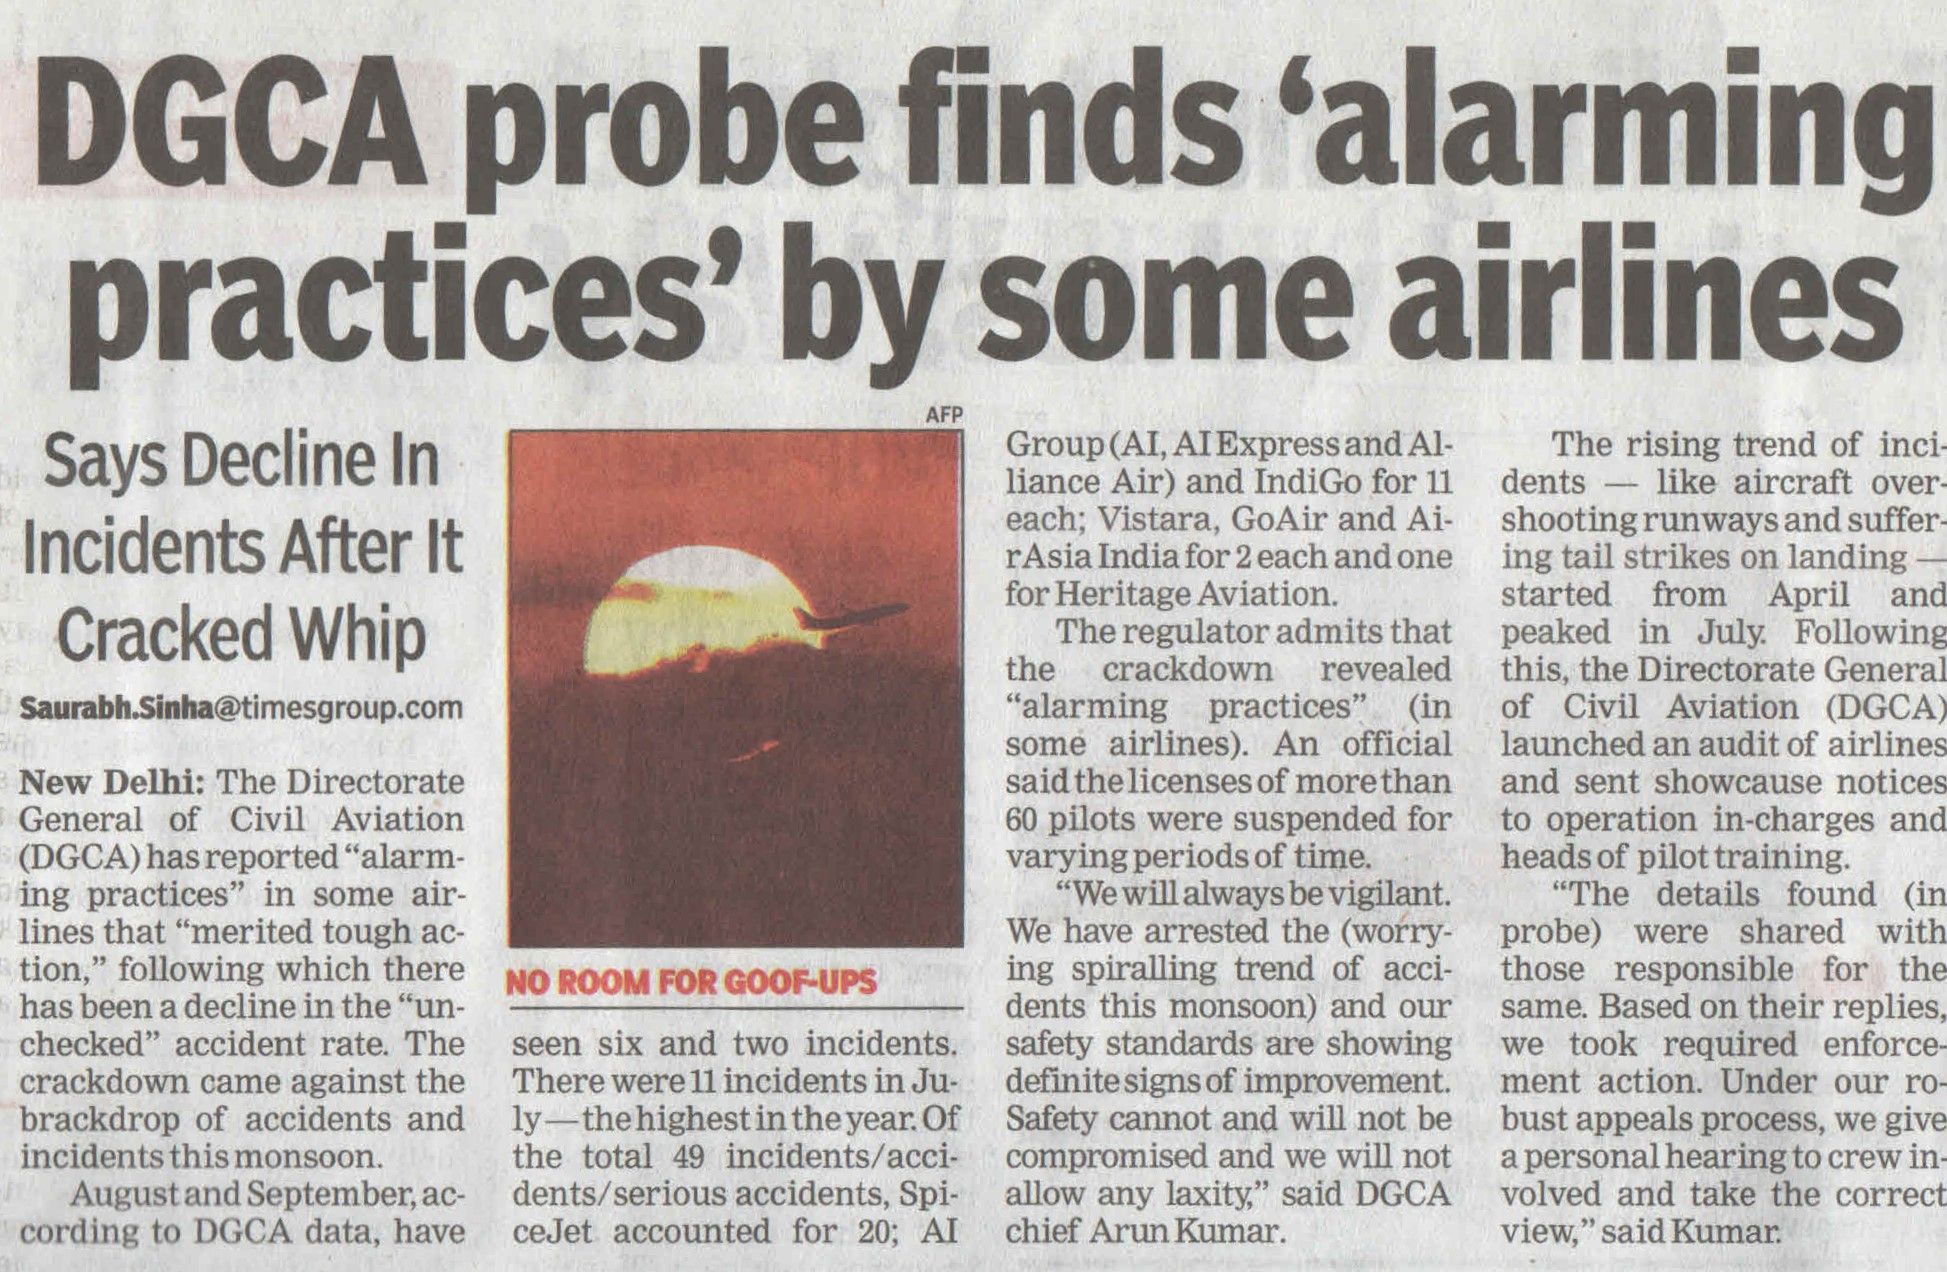 DGCA probe finds 'alarming practices' by some airlines